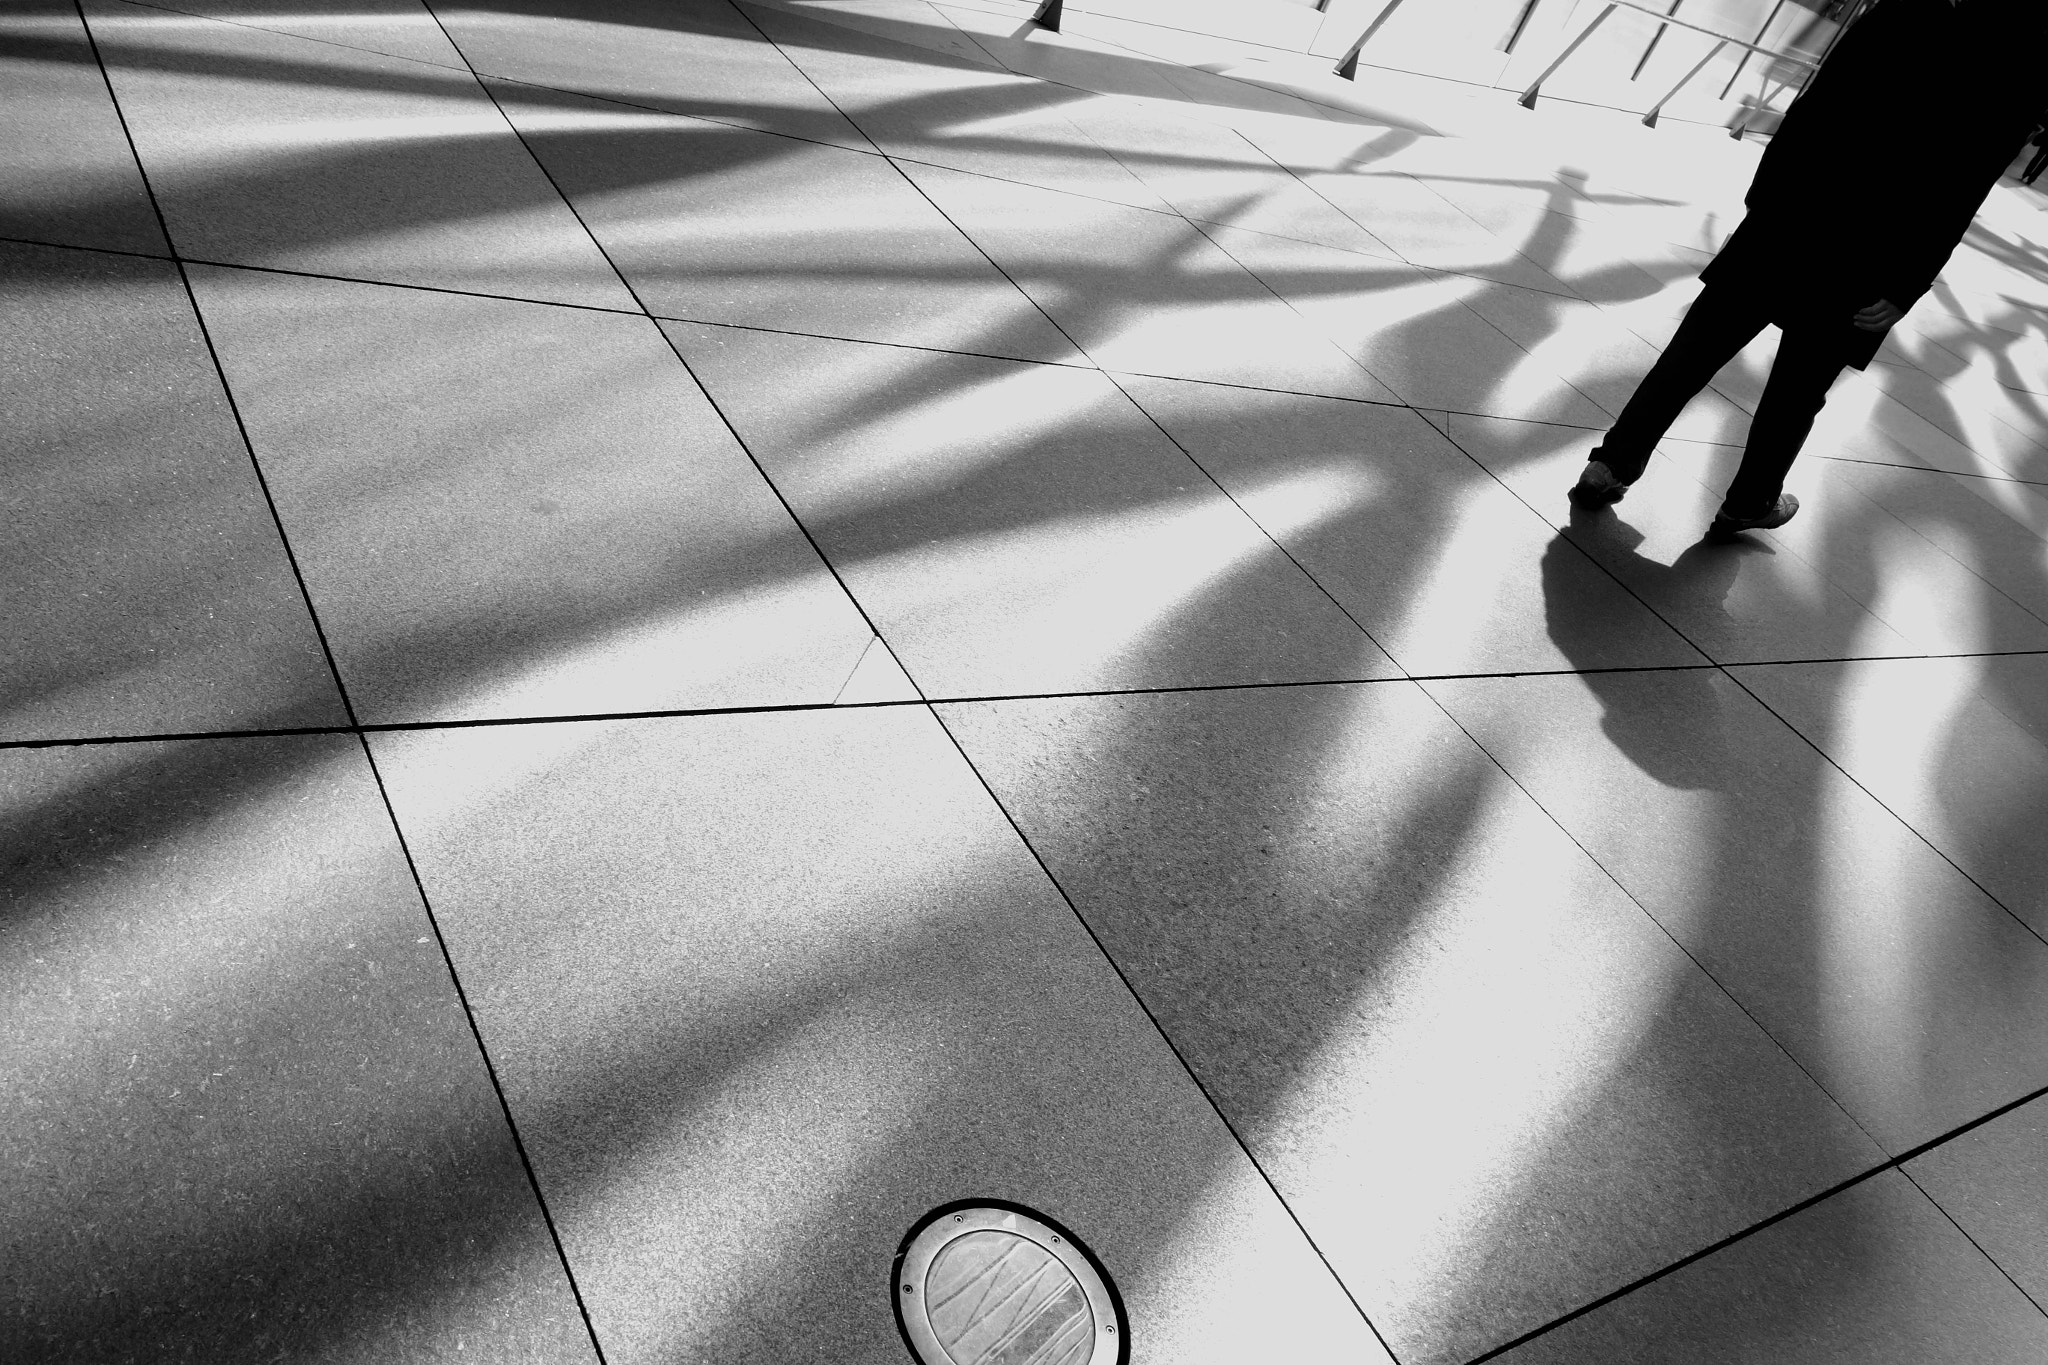 Photograph who's your real shadow? by Yuji Hirai on 500px